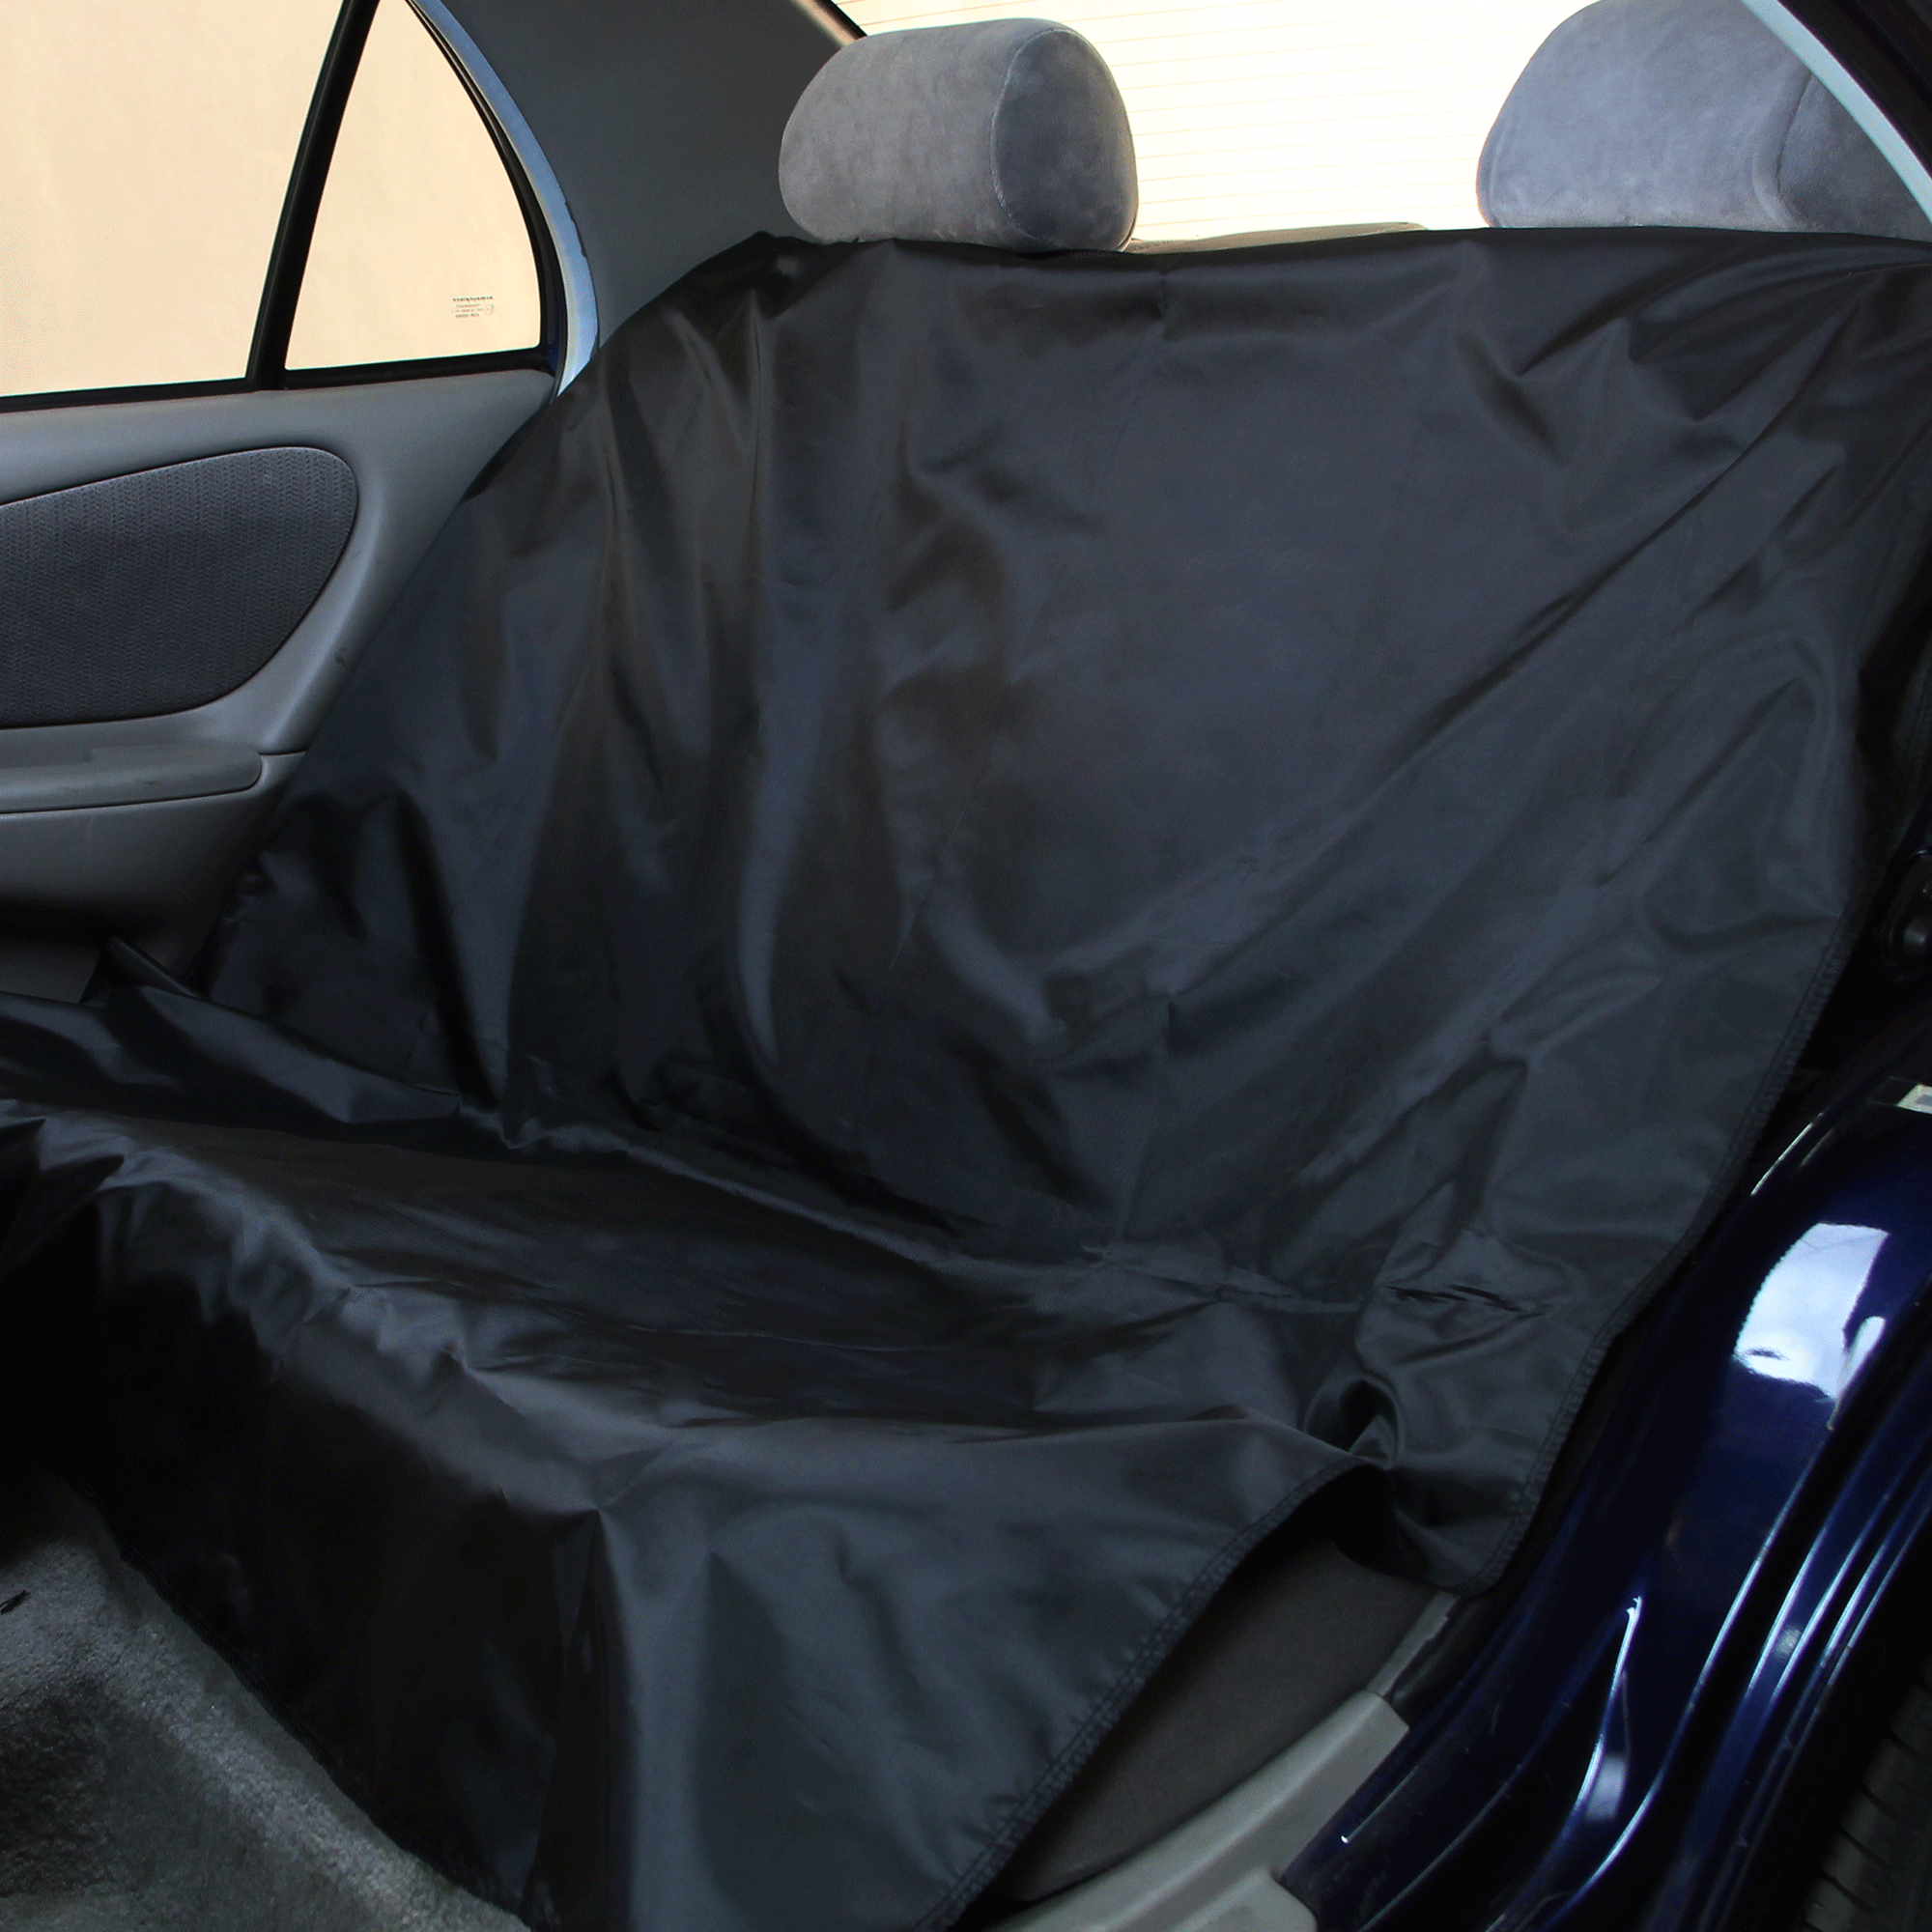 Rear Bench Water Resistant Car Seat Cover For Auto Black